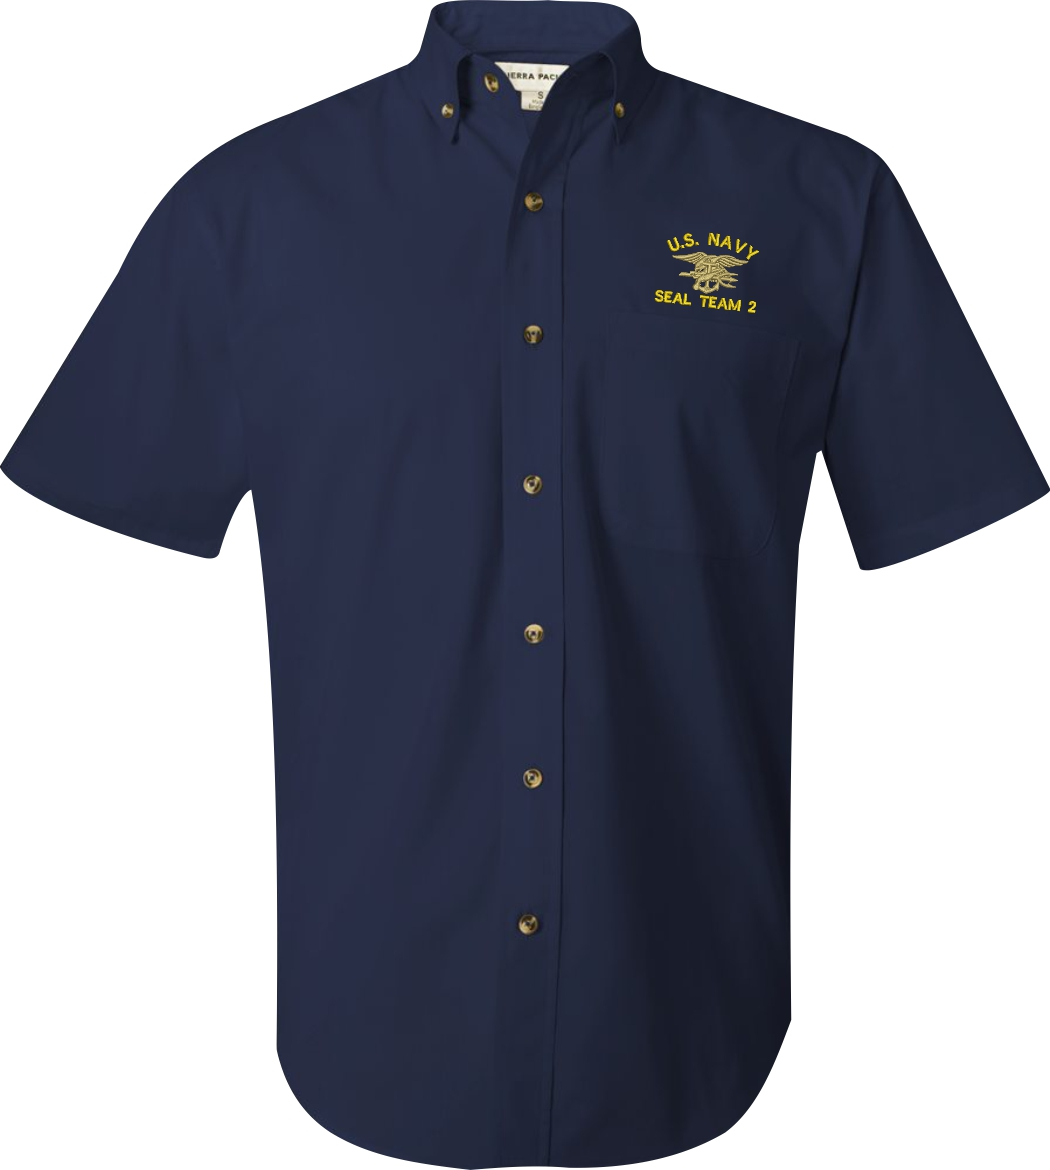 U S Navy Custom Embroidered Short Sleeve Button Down